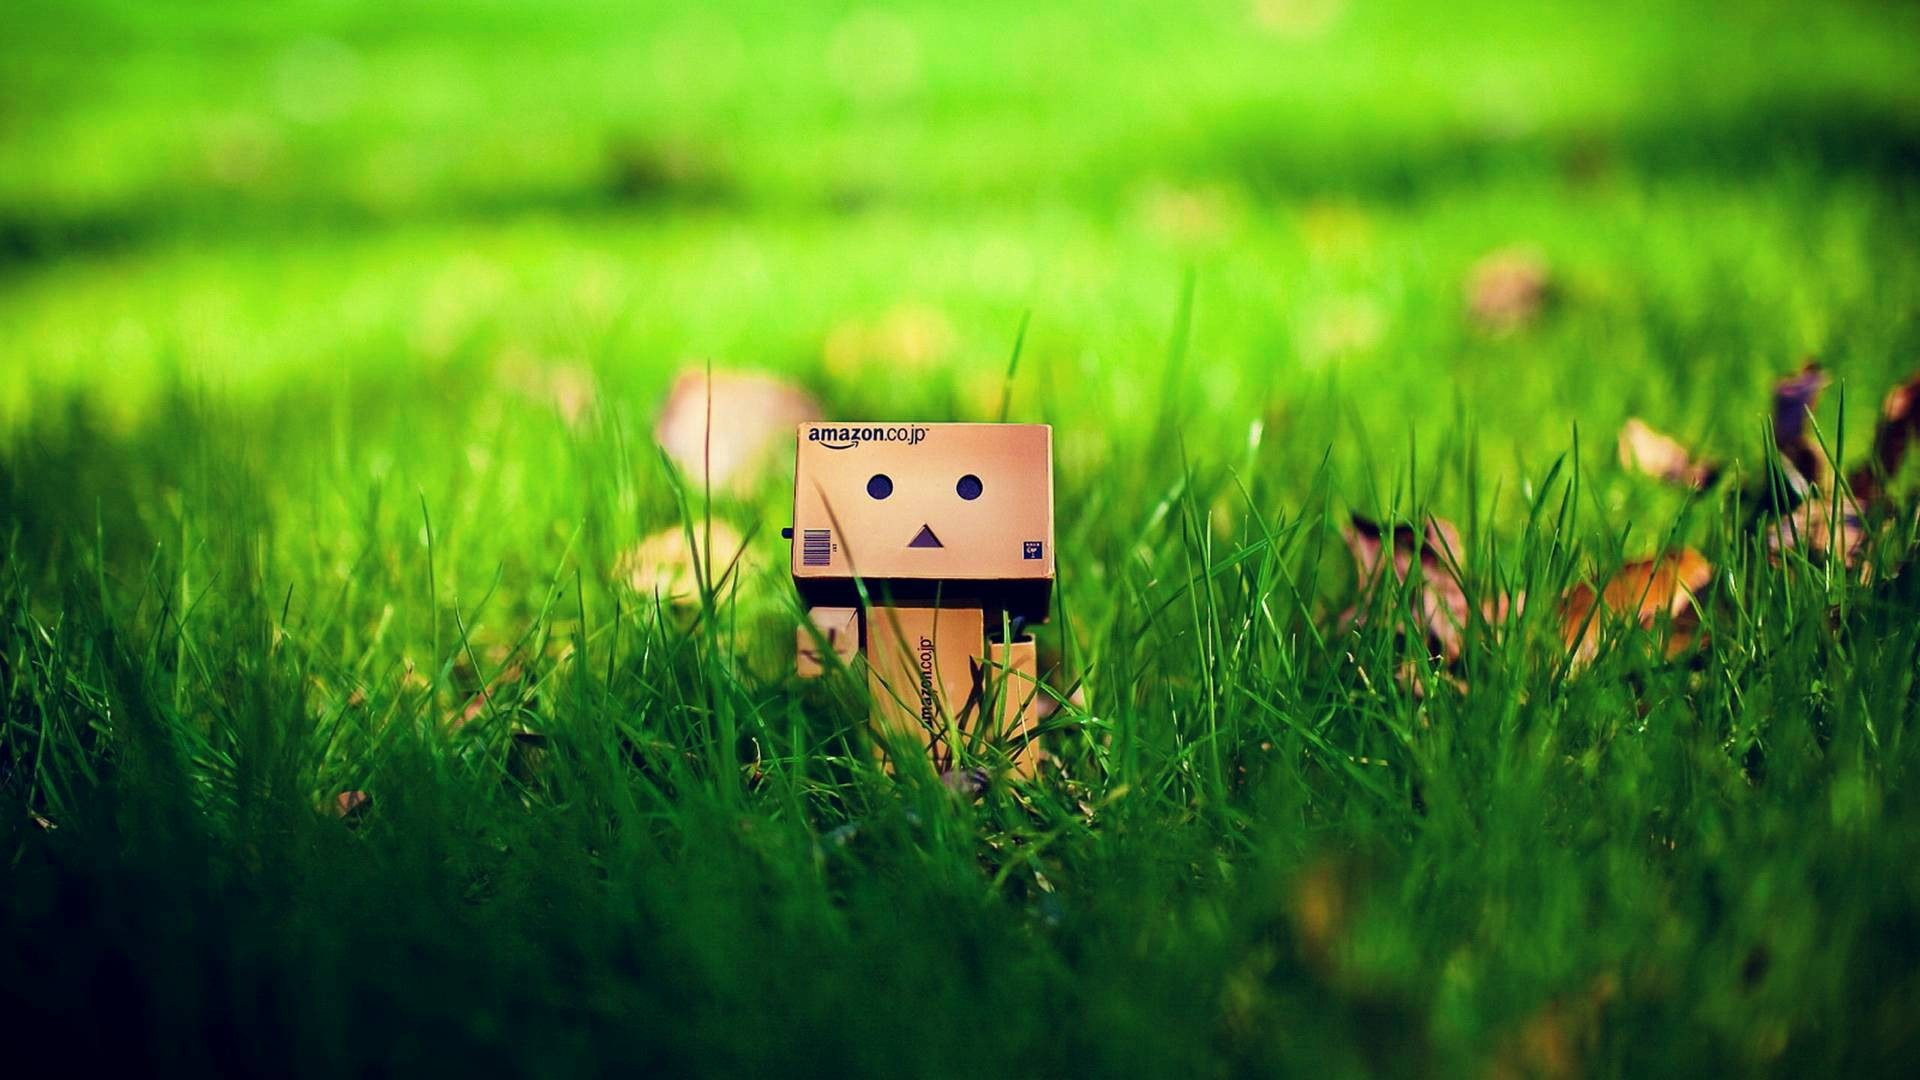 Cute Danbo On Grass Wallpaper 1920x1080